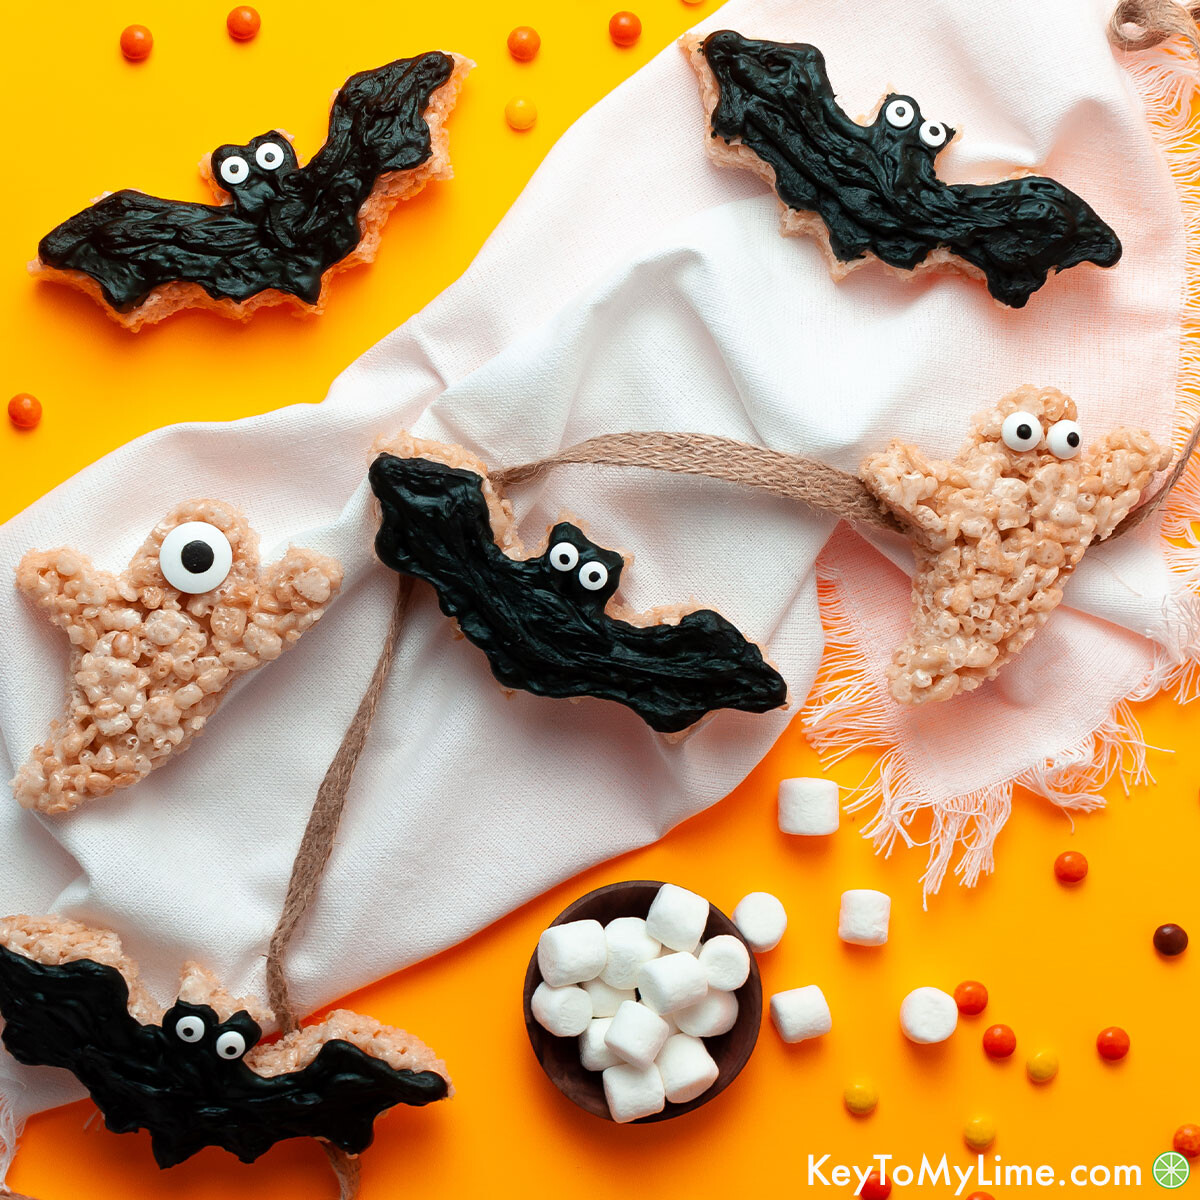 Bat and ghost rice krispie treats on an orange background.